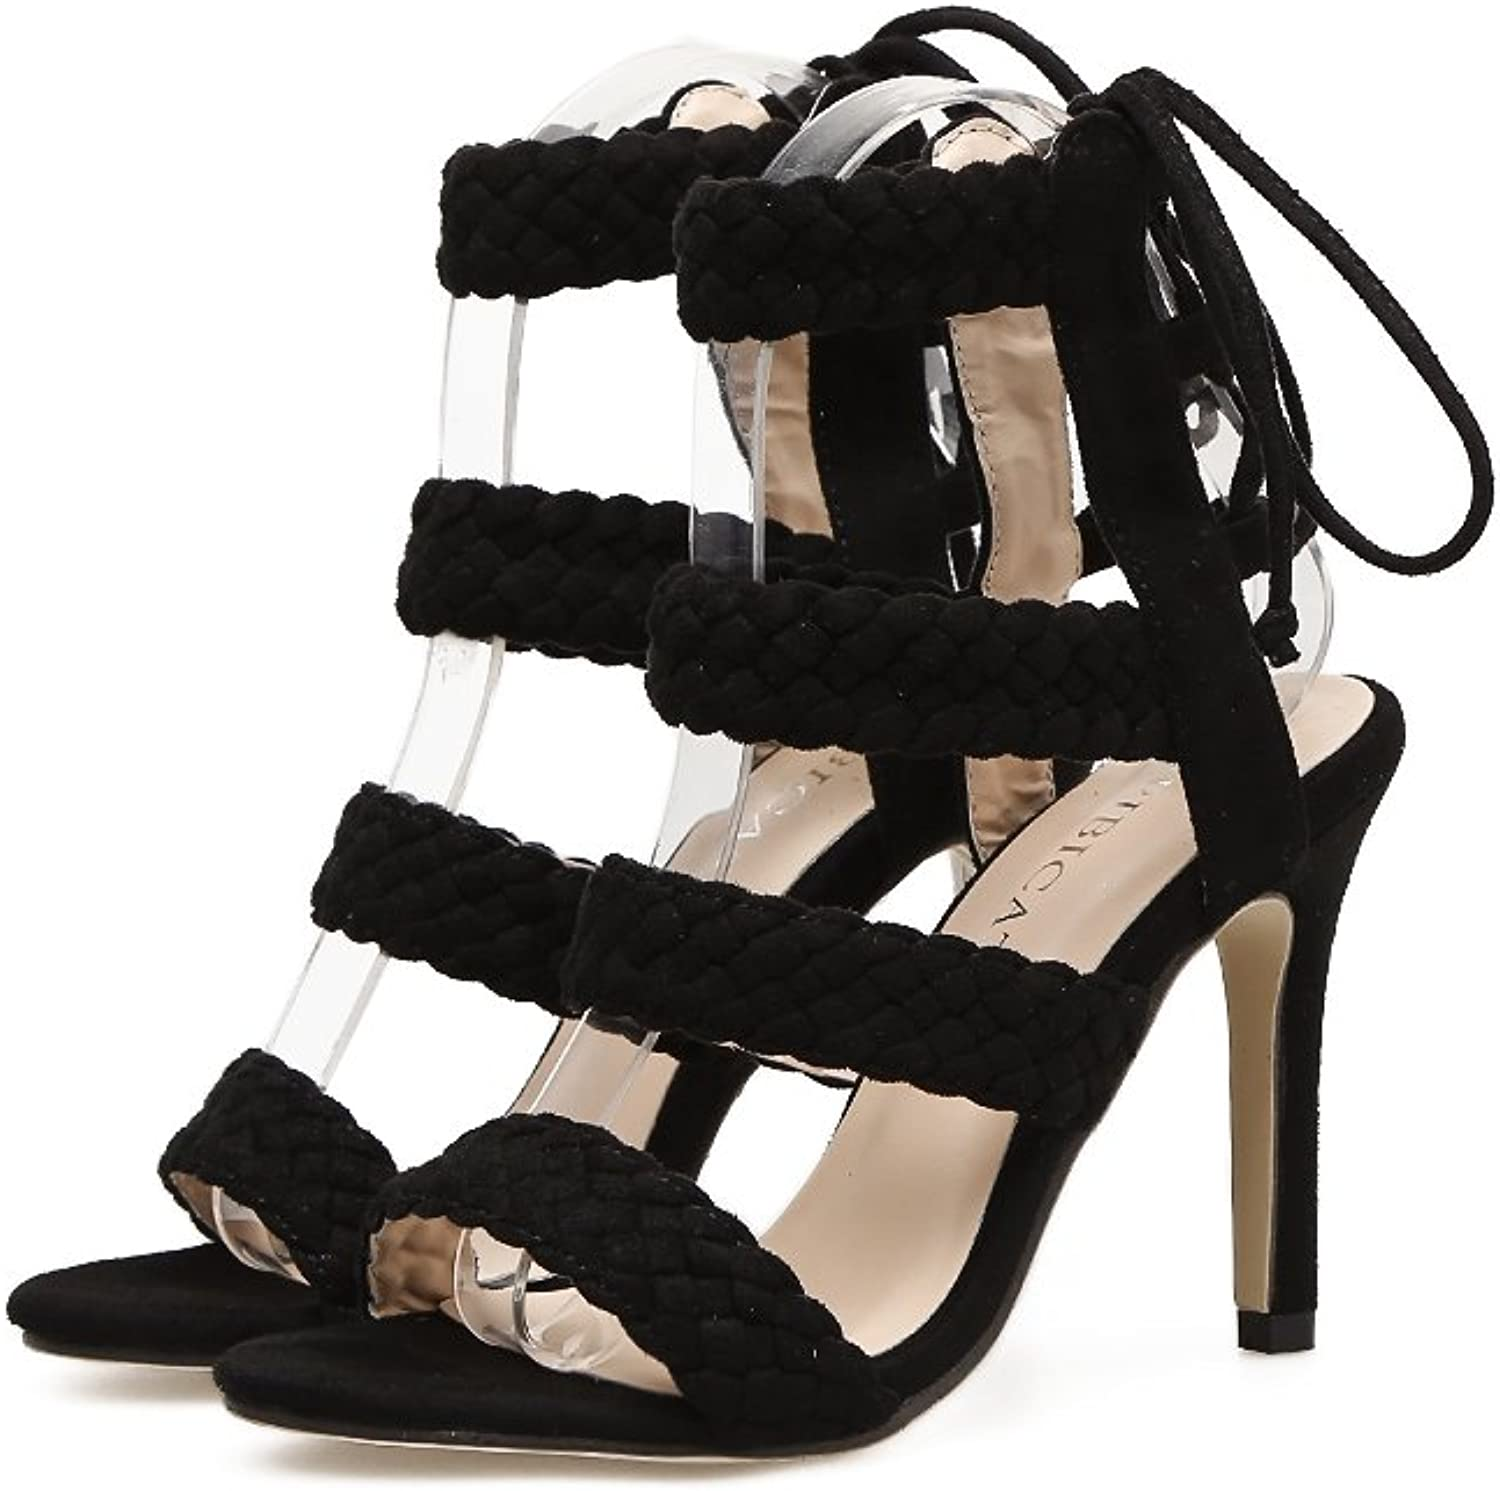 Women's shoes Suede Spring Summer Club shoes Heels Stiletto Heel Peep Toe Rhinestone for Party & Evening Dress Black, Apricot